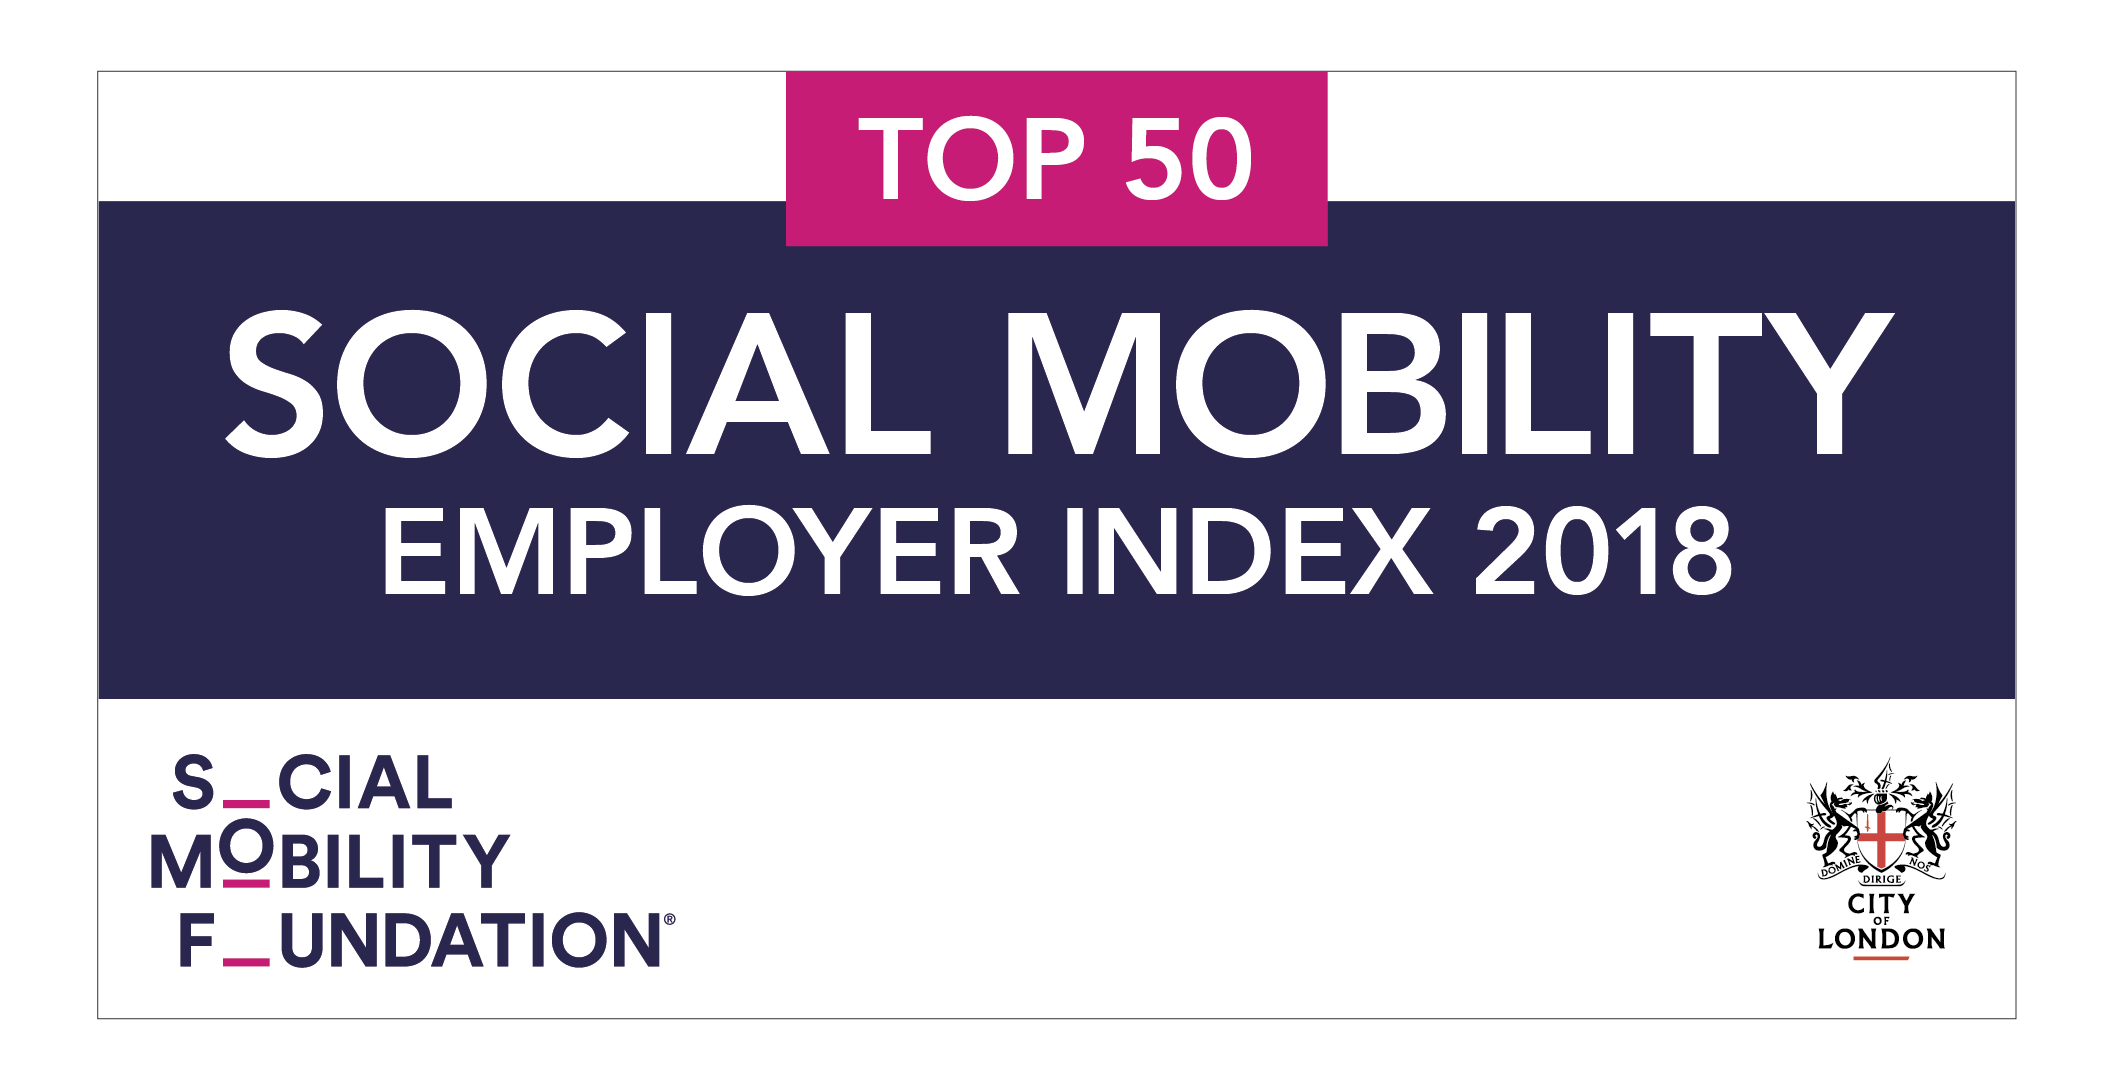 Enterprise ranked once again as a Top 10 Social Mobility Employer